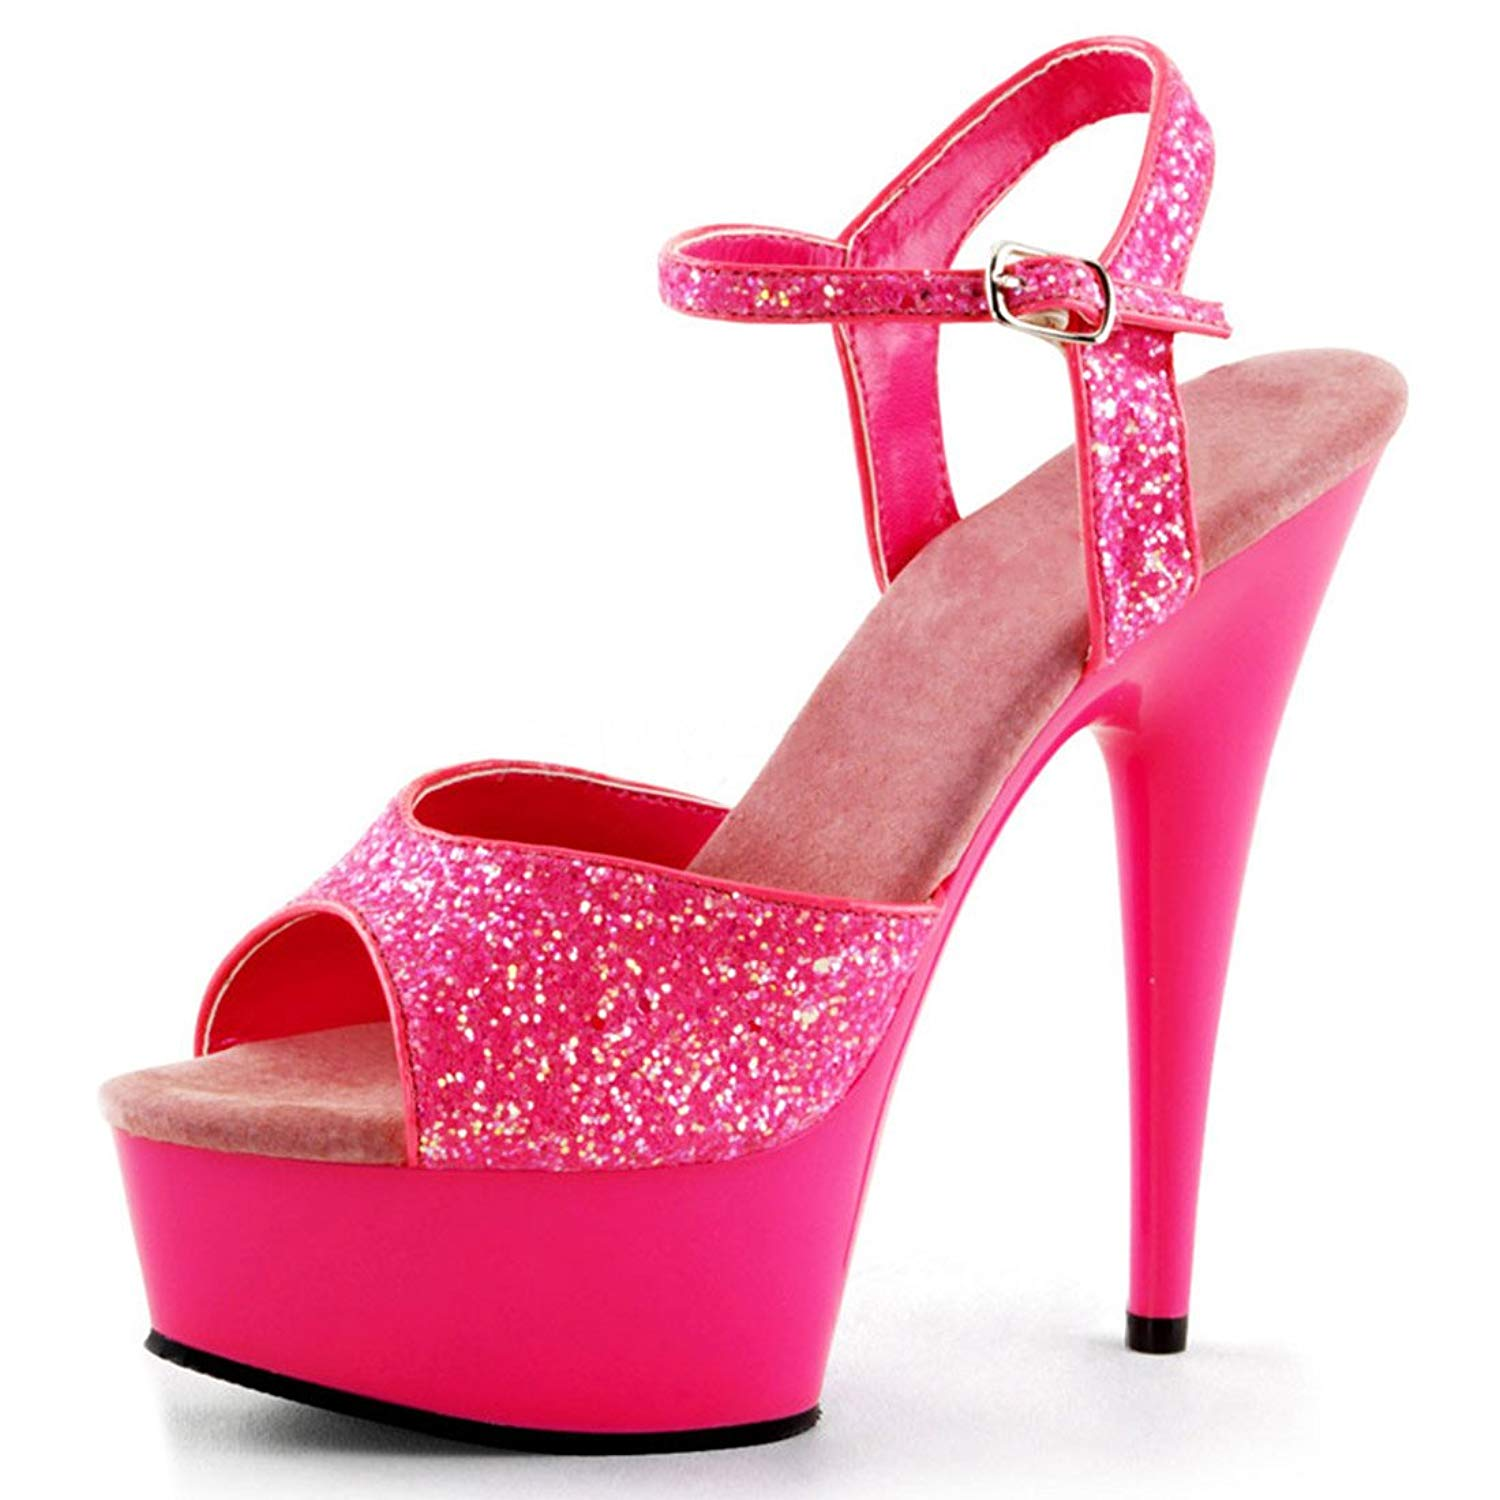 e7ac22a03d Get Quotations · Summitfashions Fun and Sexy UV Reflective Neon Pink Heels  with Glitter Straps and 6 Inch Heel